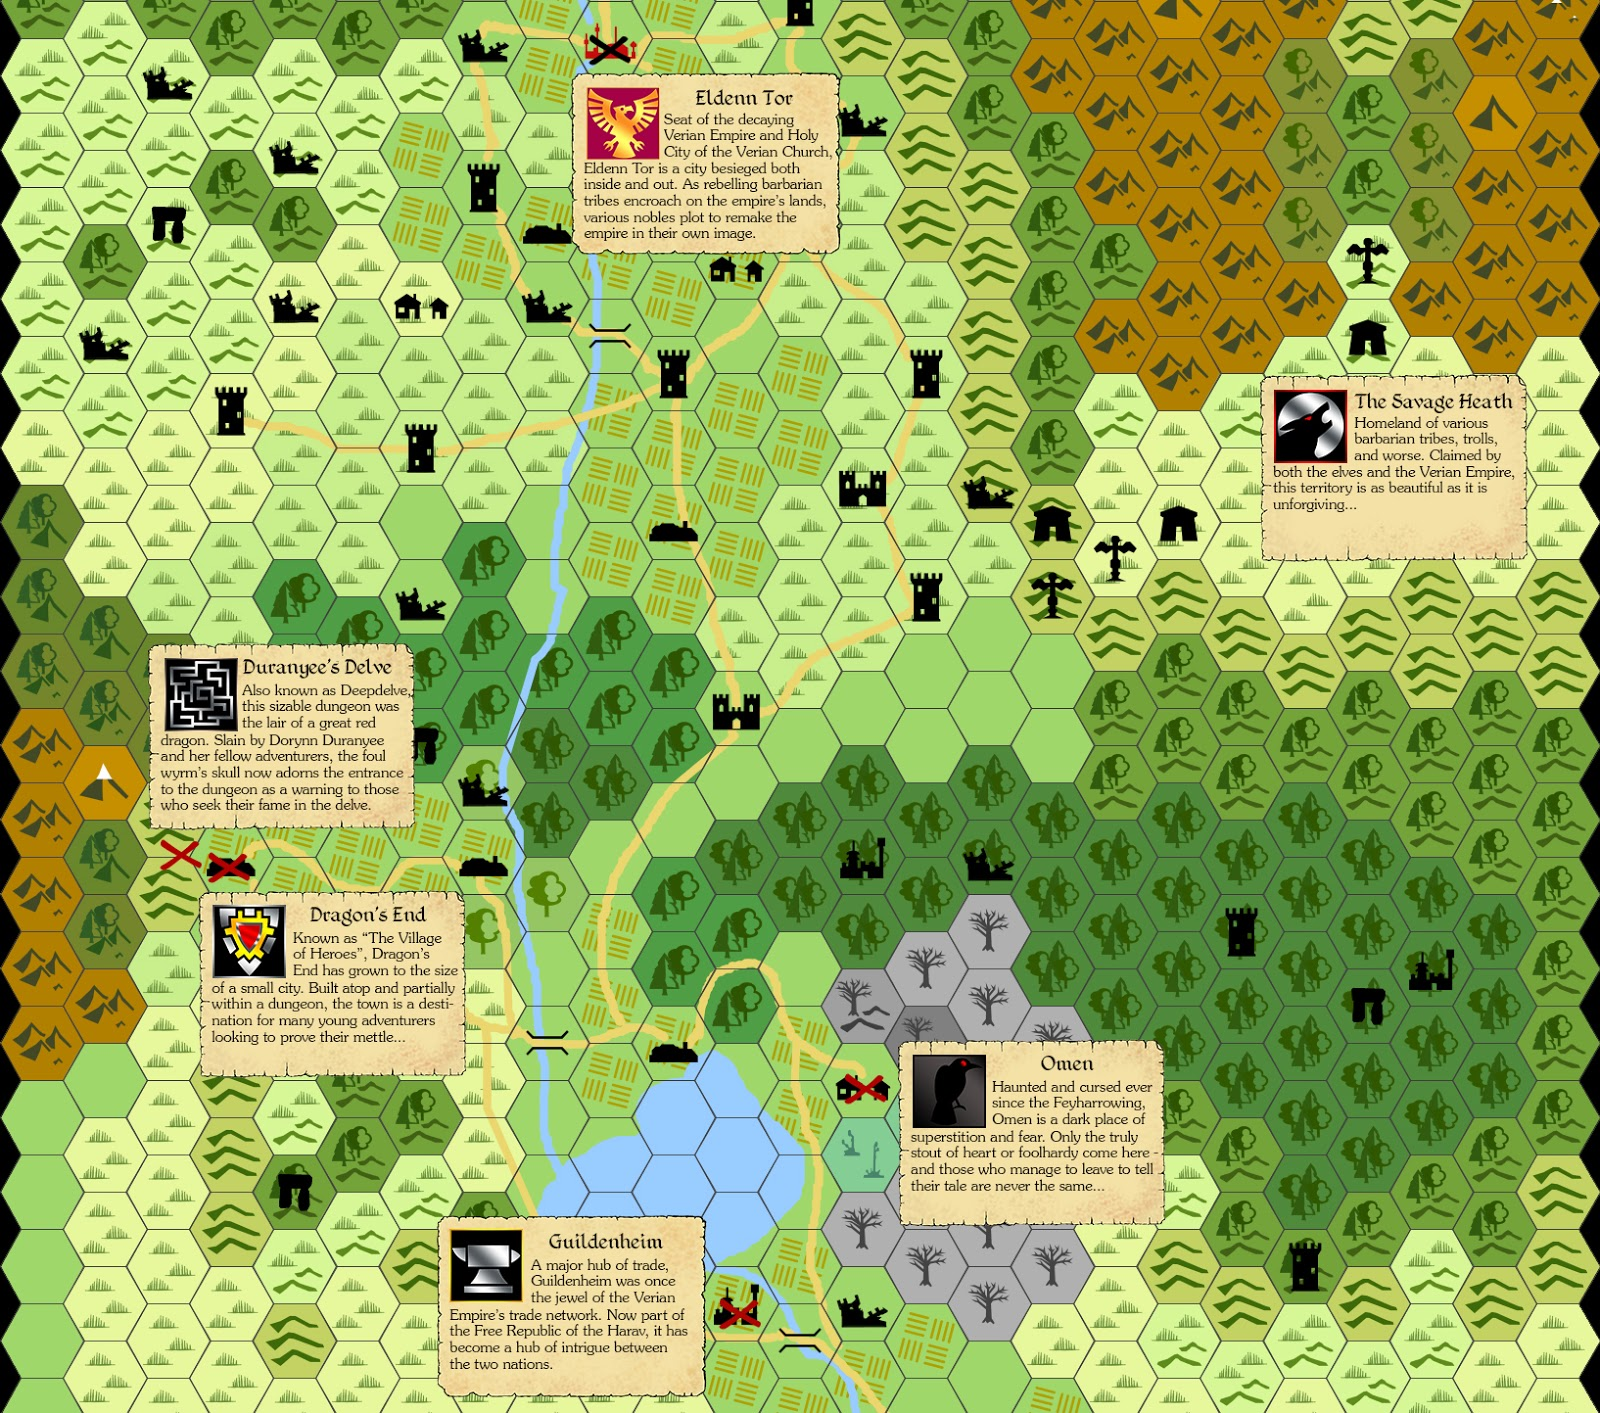 map by hexographer icons by lorc parchment template by inked adventures photoshop magic by me